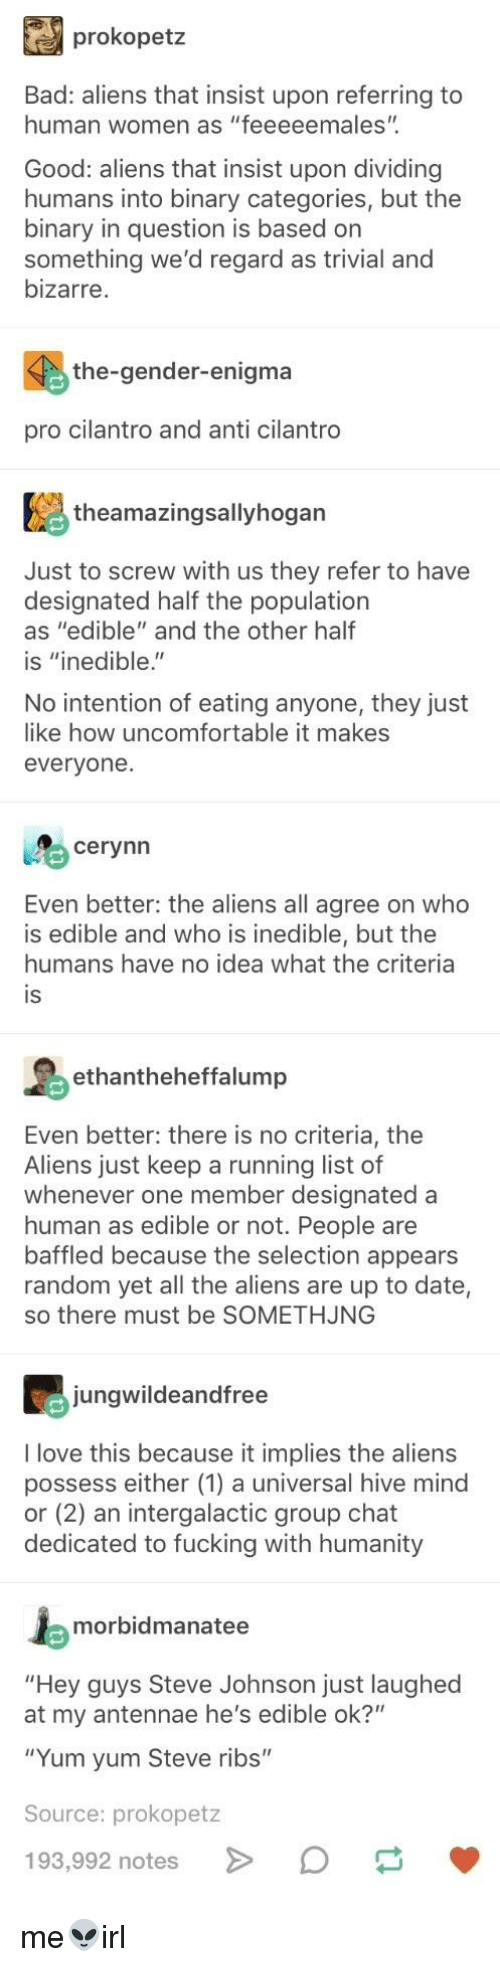 """Bad, Fucking, and Group Chat: prokopetz  Bad: aliens that insist upon referring to  human women as """"feeeeemales"""".  Good: aliens that insist upon dividing  humans into binary categories, but the  binary in question is based on  something we'd regard as trivial and  bizarre  the-gender-enigma  pro cilantro and anti cilantro  theamazingsallyhogan  Just to screw with us they refer to have  designated half the population  as """"edible"""" and the other half  is """"inedible.""""  No intention of eating anyone, they just  like how uncomfortable it makes  everyone.  cerynn  Even better: the aliens all agree on who  is edible and who is inedible, but the  humans have no idea what the criteria  IS  ethantheheffalump  Even better: there is no criteria, the  Aliens just keep a running list of  whenever one member designated a  human as edible or not. People are  baffled because the selection appears  random yet all the aliens are up to date,  so there must be SOMETHJNG  jungwildeandfree  I love this because it implies the aliens  possess either (1) a universal hive mind  or (2) an intergalactic group chat  dedicated to fucking with humanity  morbidmanatee  """"Hey guys Steve Johnson just laughed  at my antennae he's edible ok?""""  """"Yum yum Steve ribs""""  Source: prokopetz  193,992 notes >"""